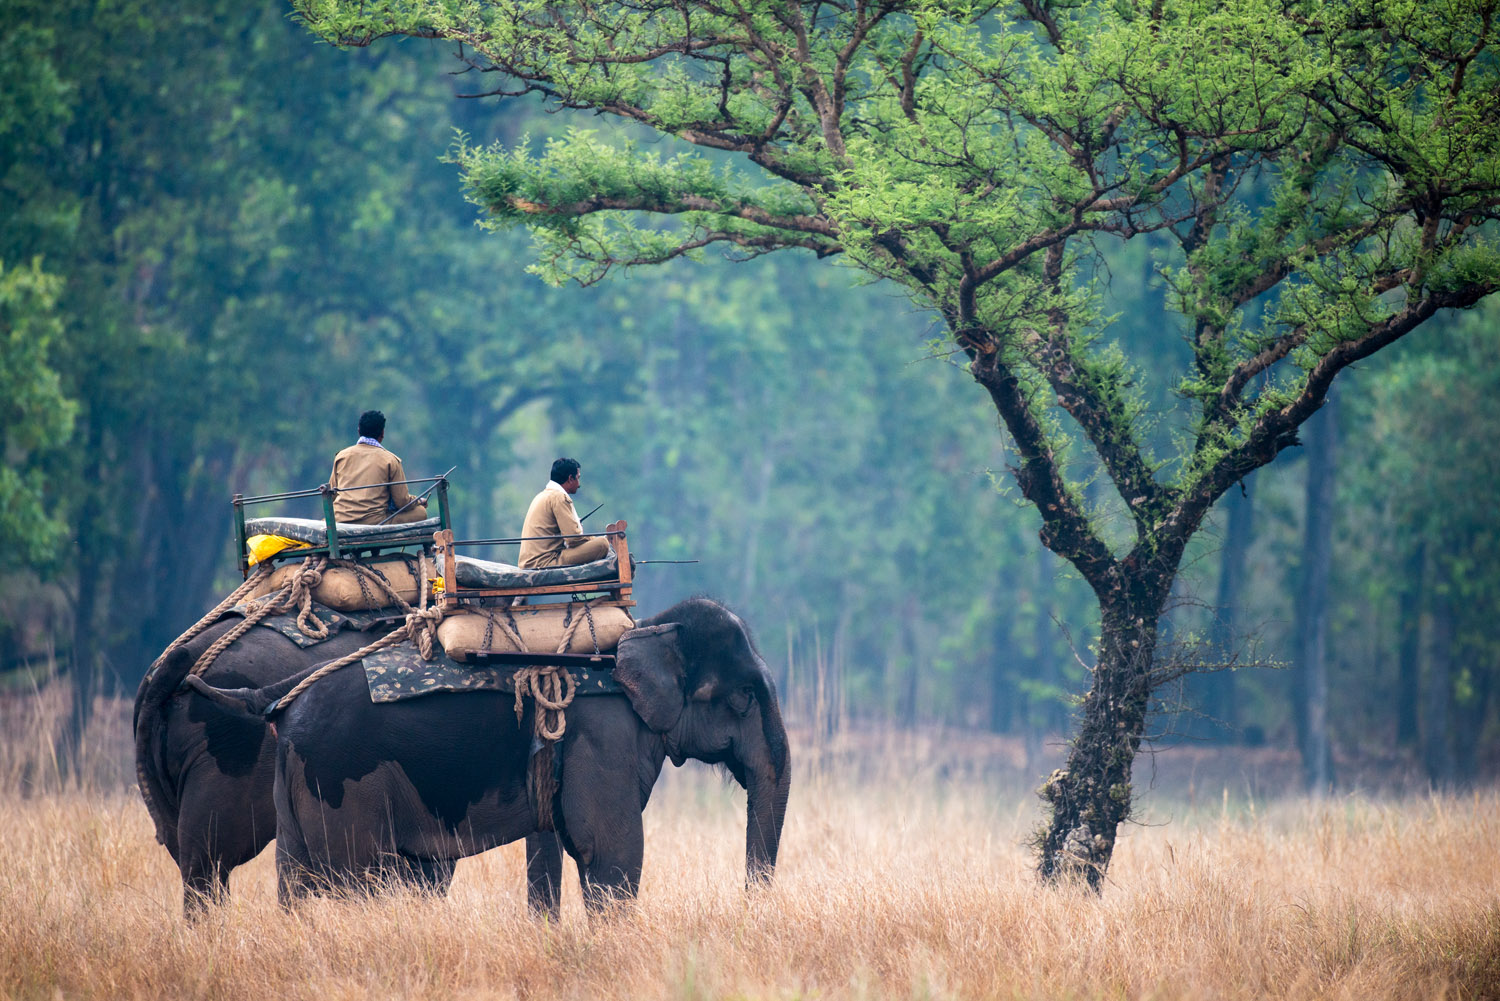 Forest guard mahouts on Indian elephants watching Bengal tiger cubs in meadow by 'khair' tree, Bandhavgarh National Park, Madhya Pradesh, India